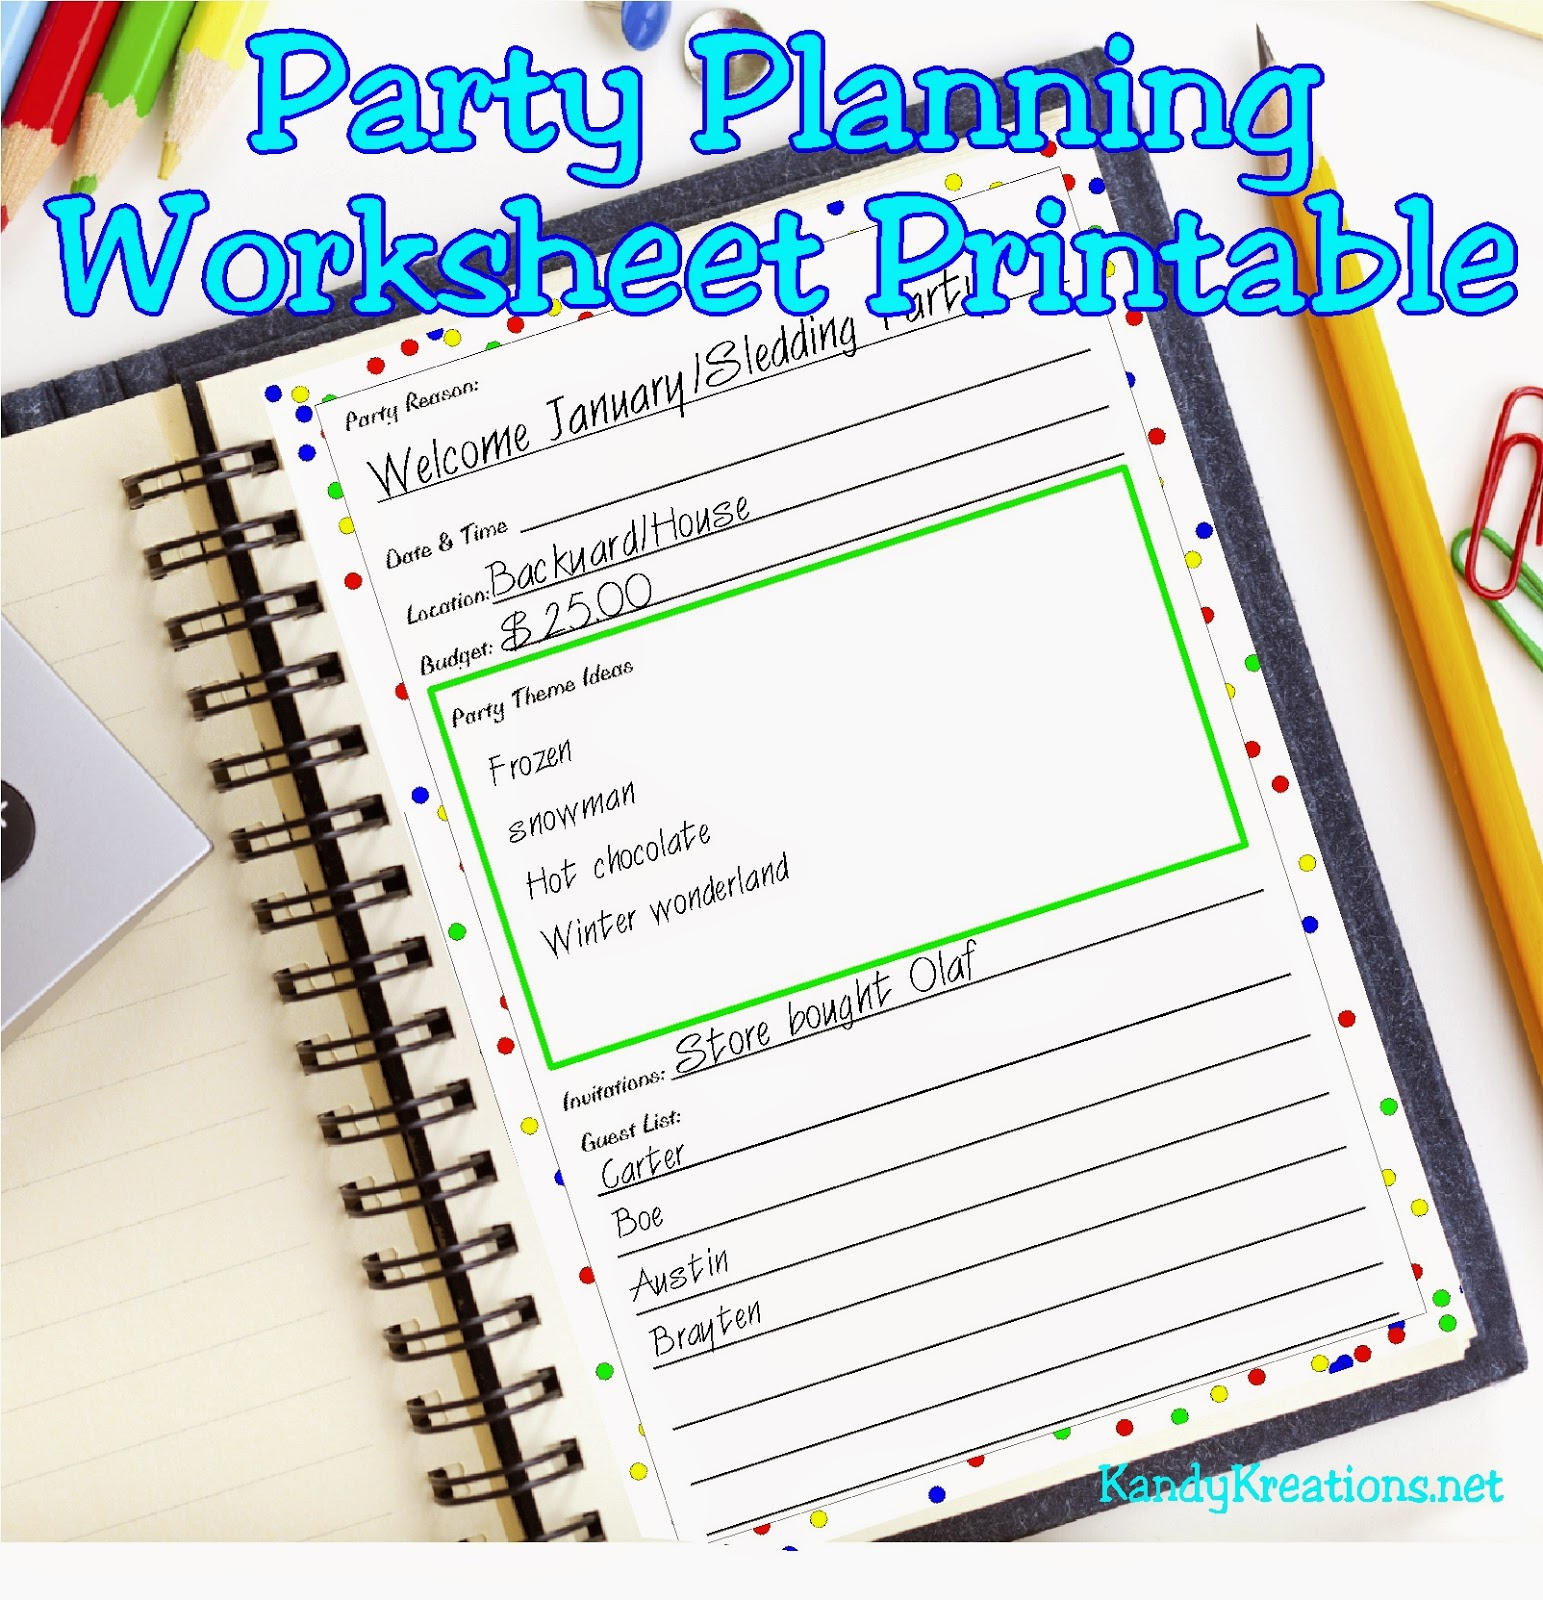 Plan the perfect party with this party planning worksheet.  Set is designed to fit in an A5 binder and has four pages to help you plan the perfect party.  You'll have plenty of room to brainstorm and make your next party fun and exciting.